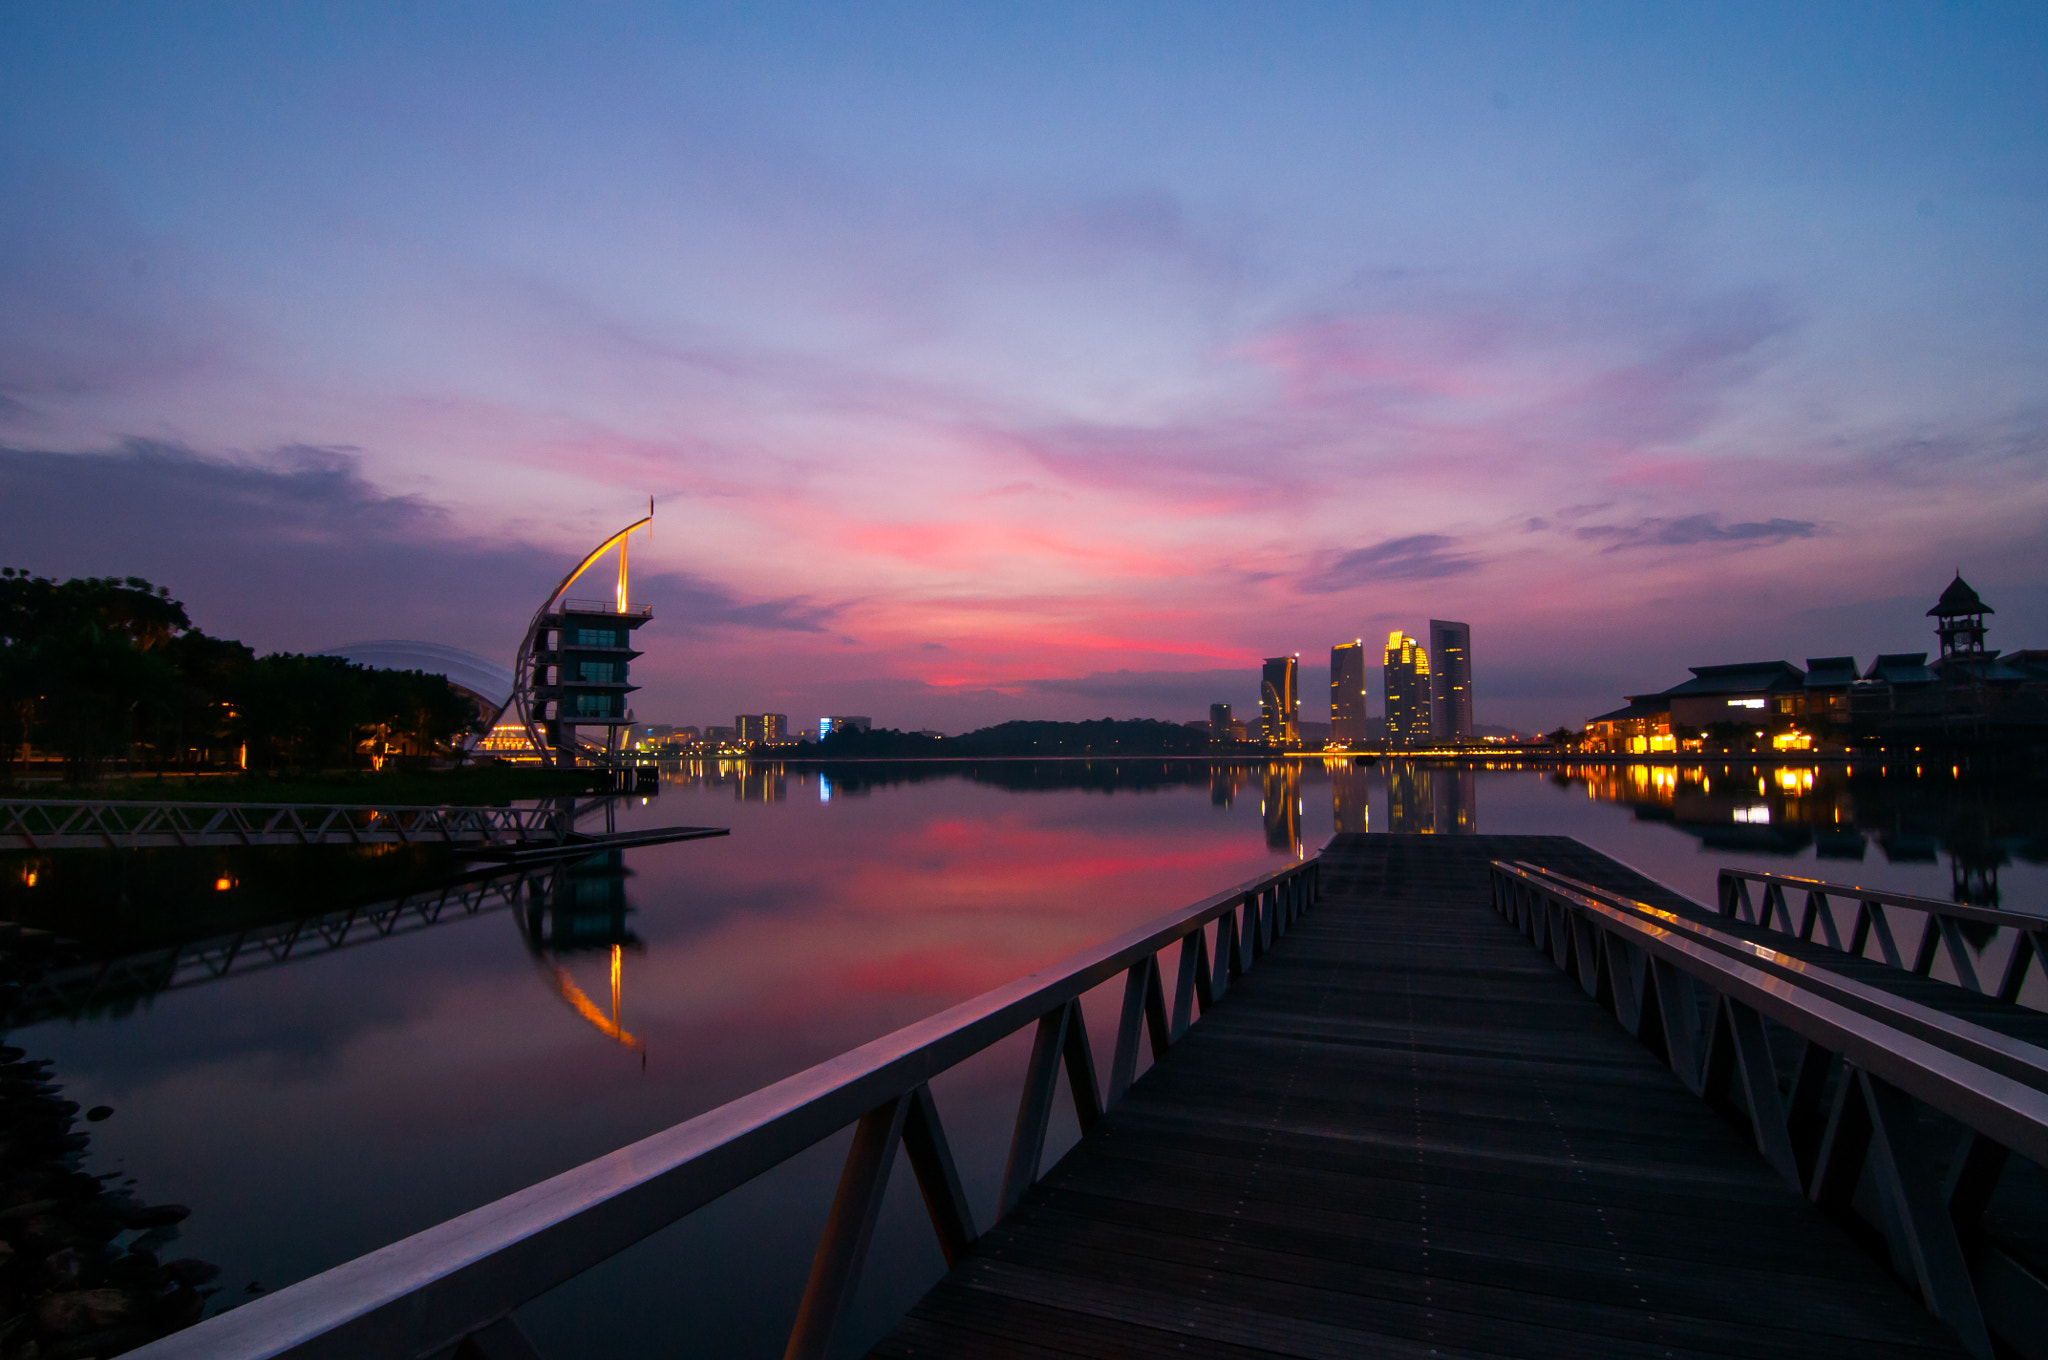 Photograph Pullman Putrajaya by mradz radz on 500px